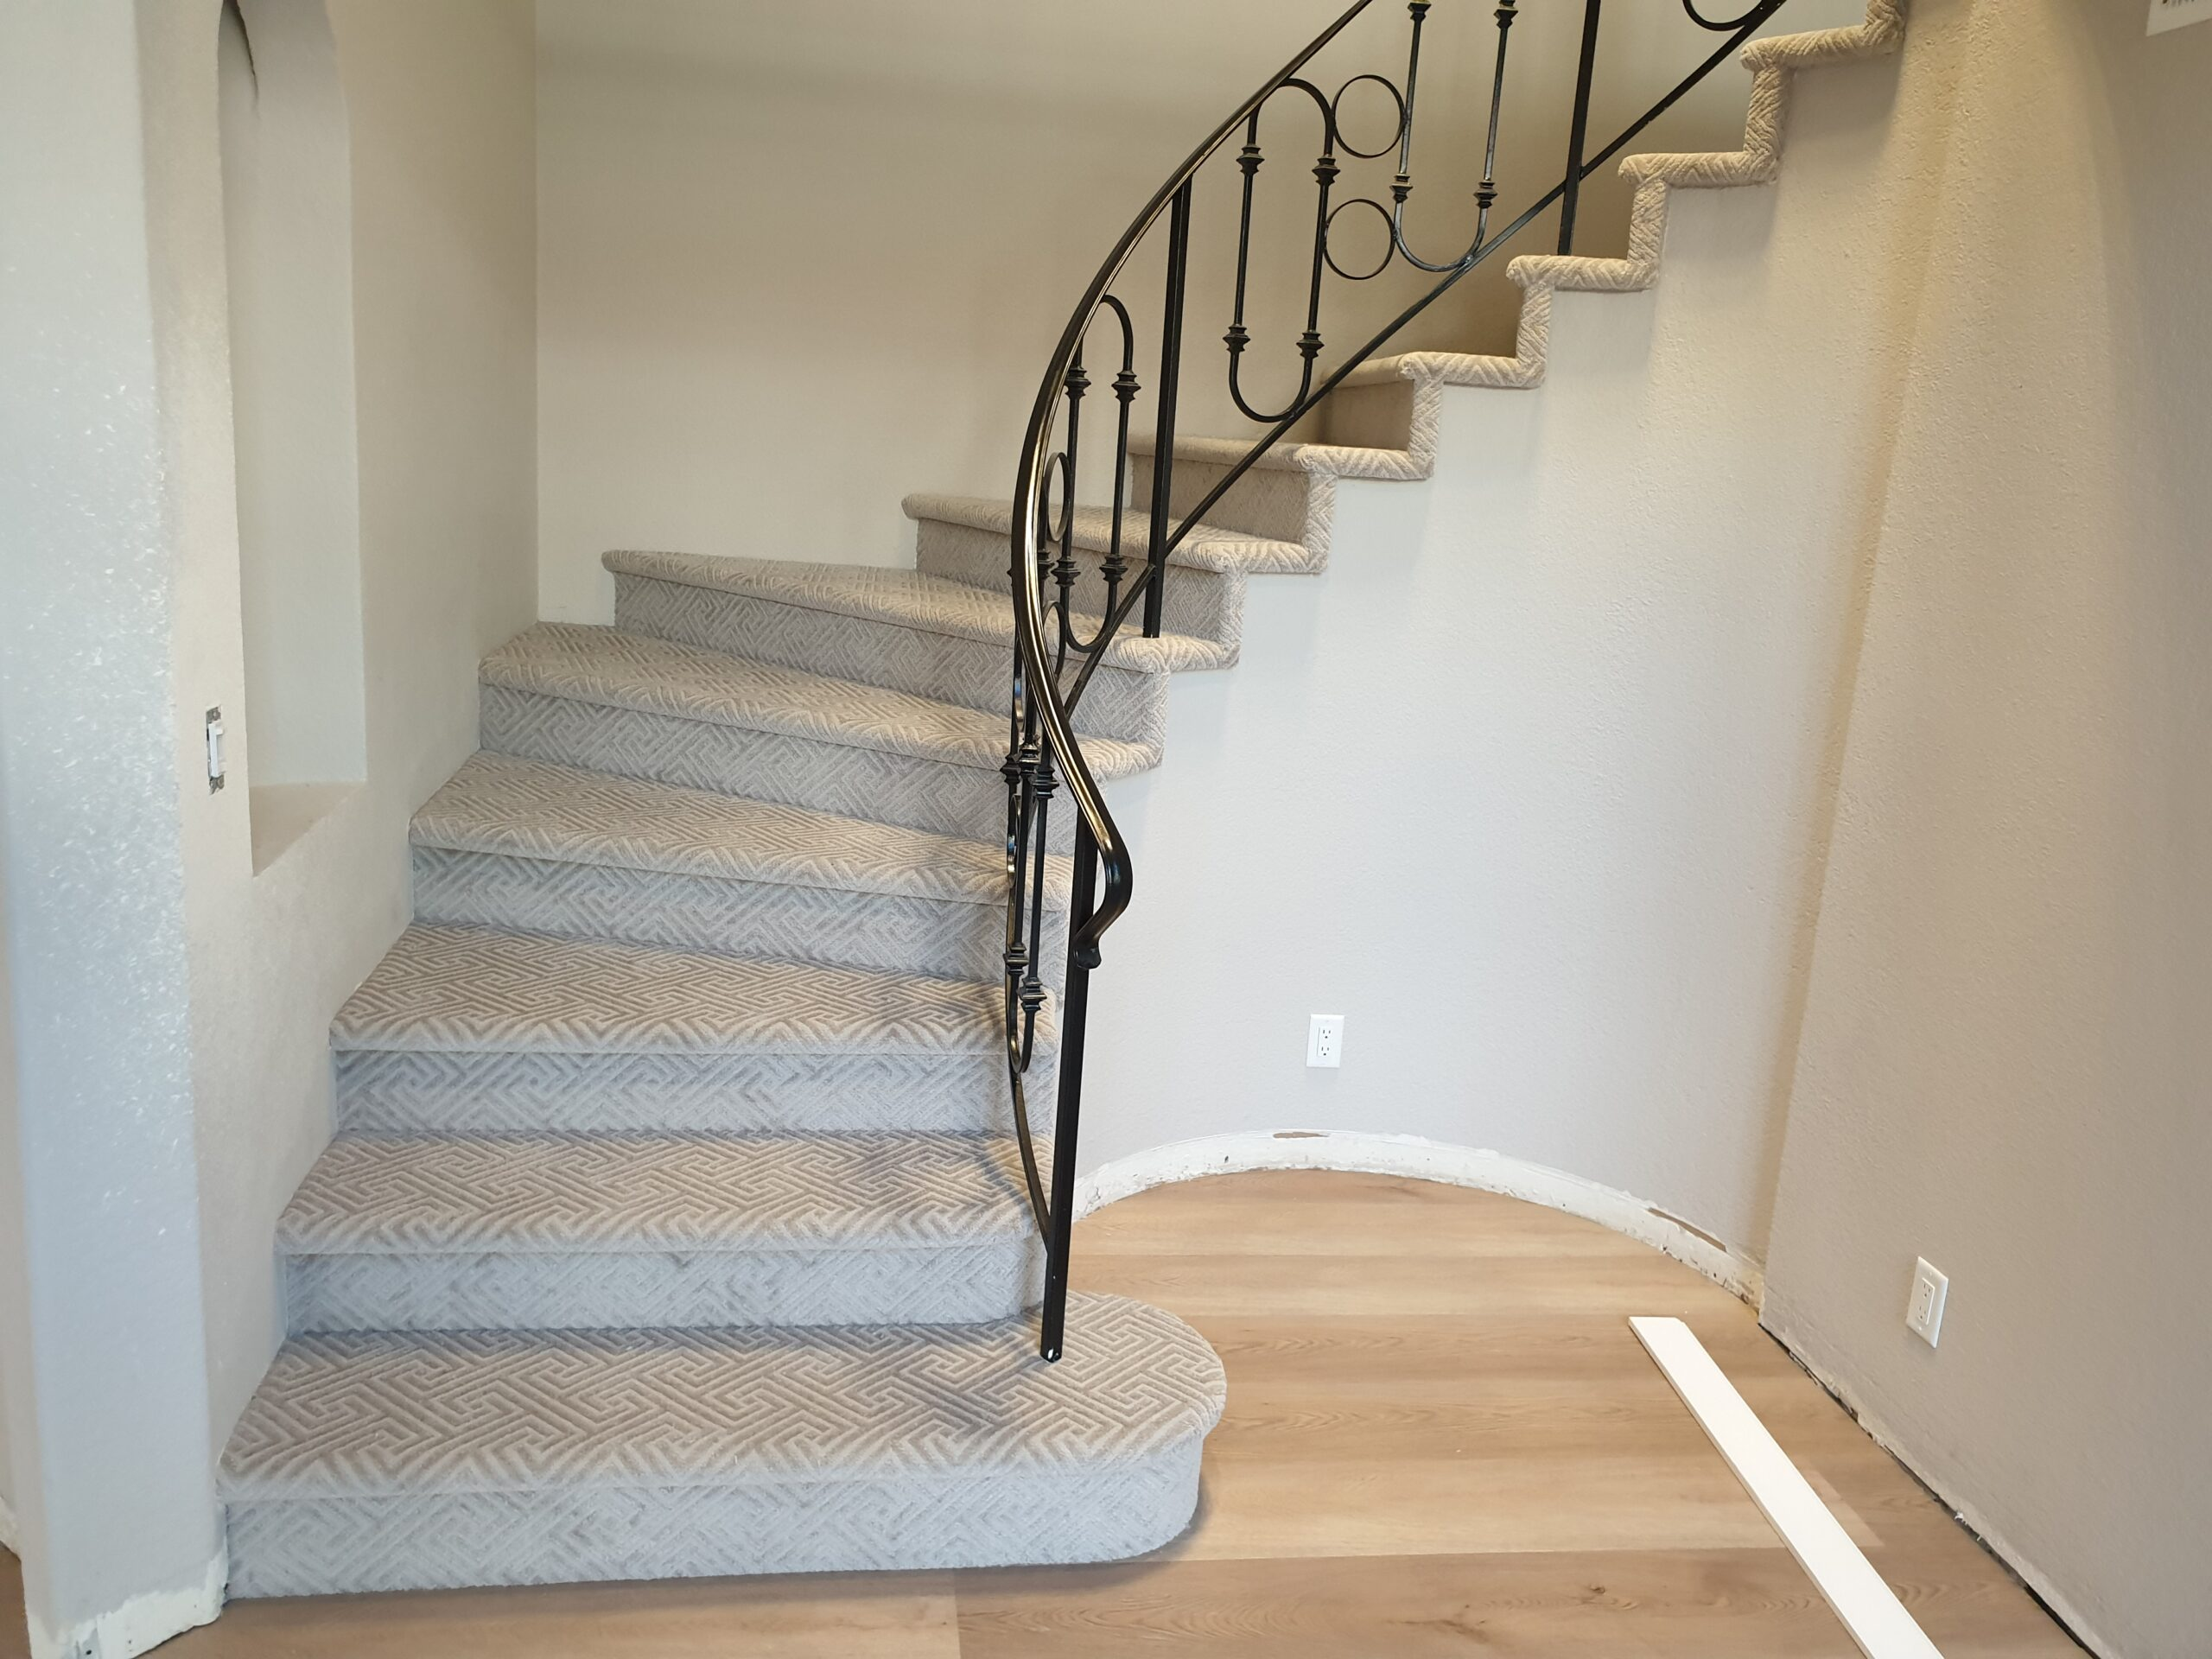 Carpet Flooring on Stairs in Mountain View Home